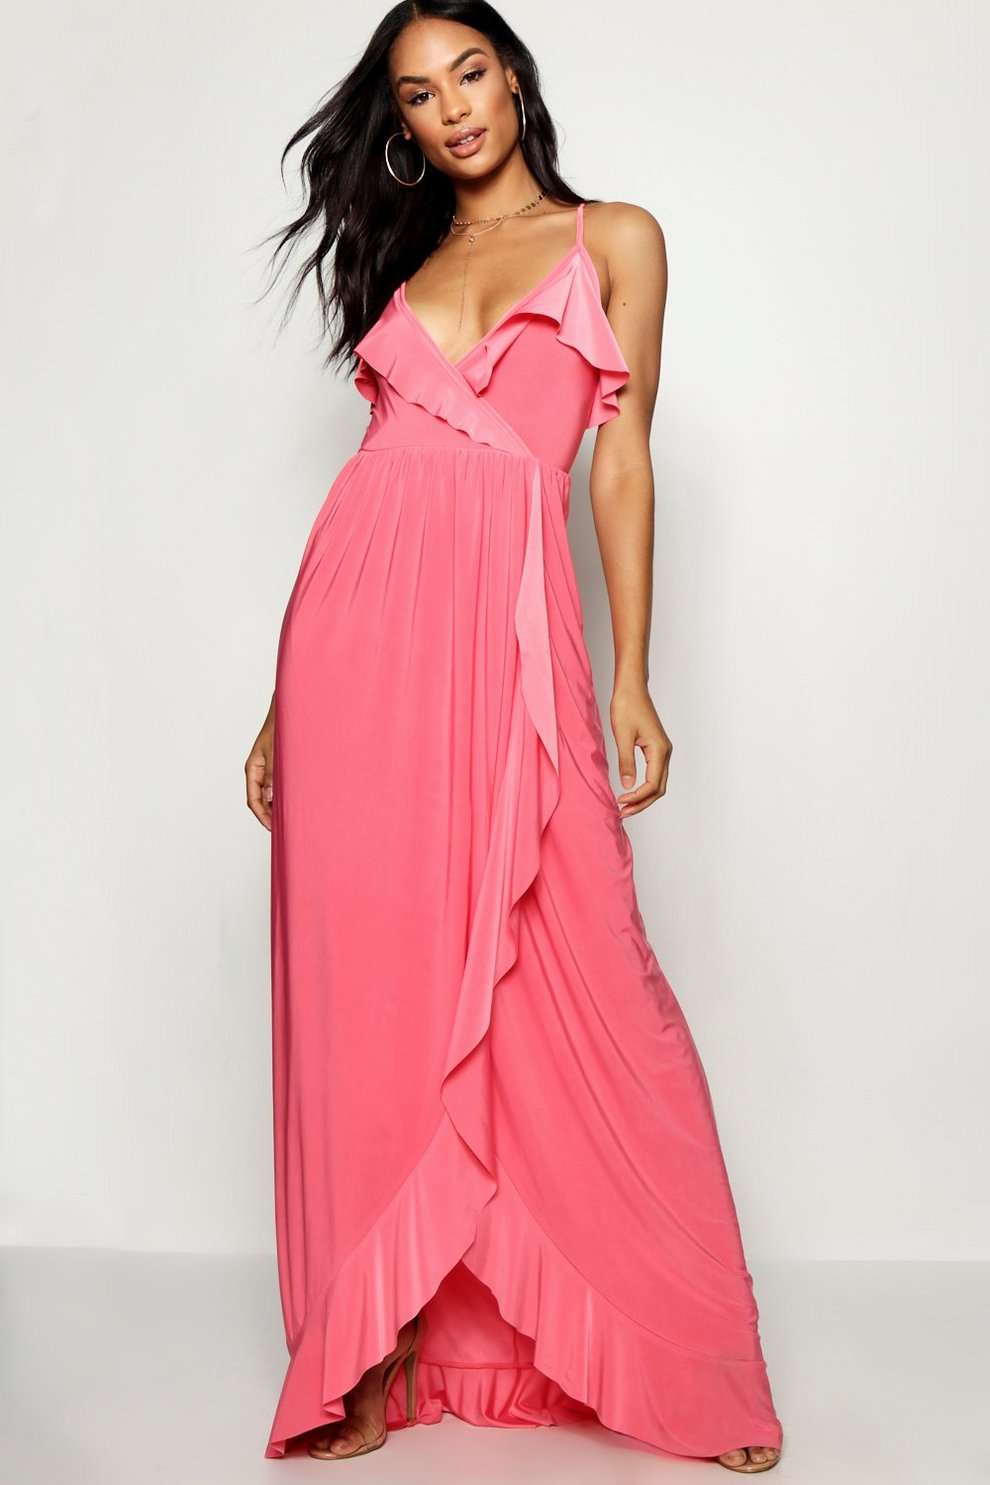 Boohoo Tall Slinky Ruffle Maxi Dress Collections Outlet Sast Cheap ...